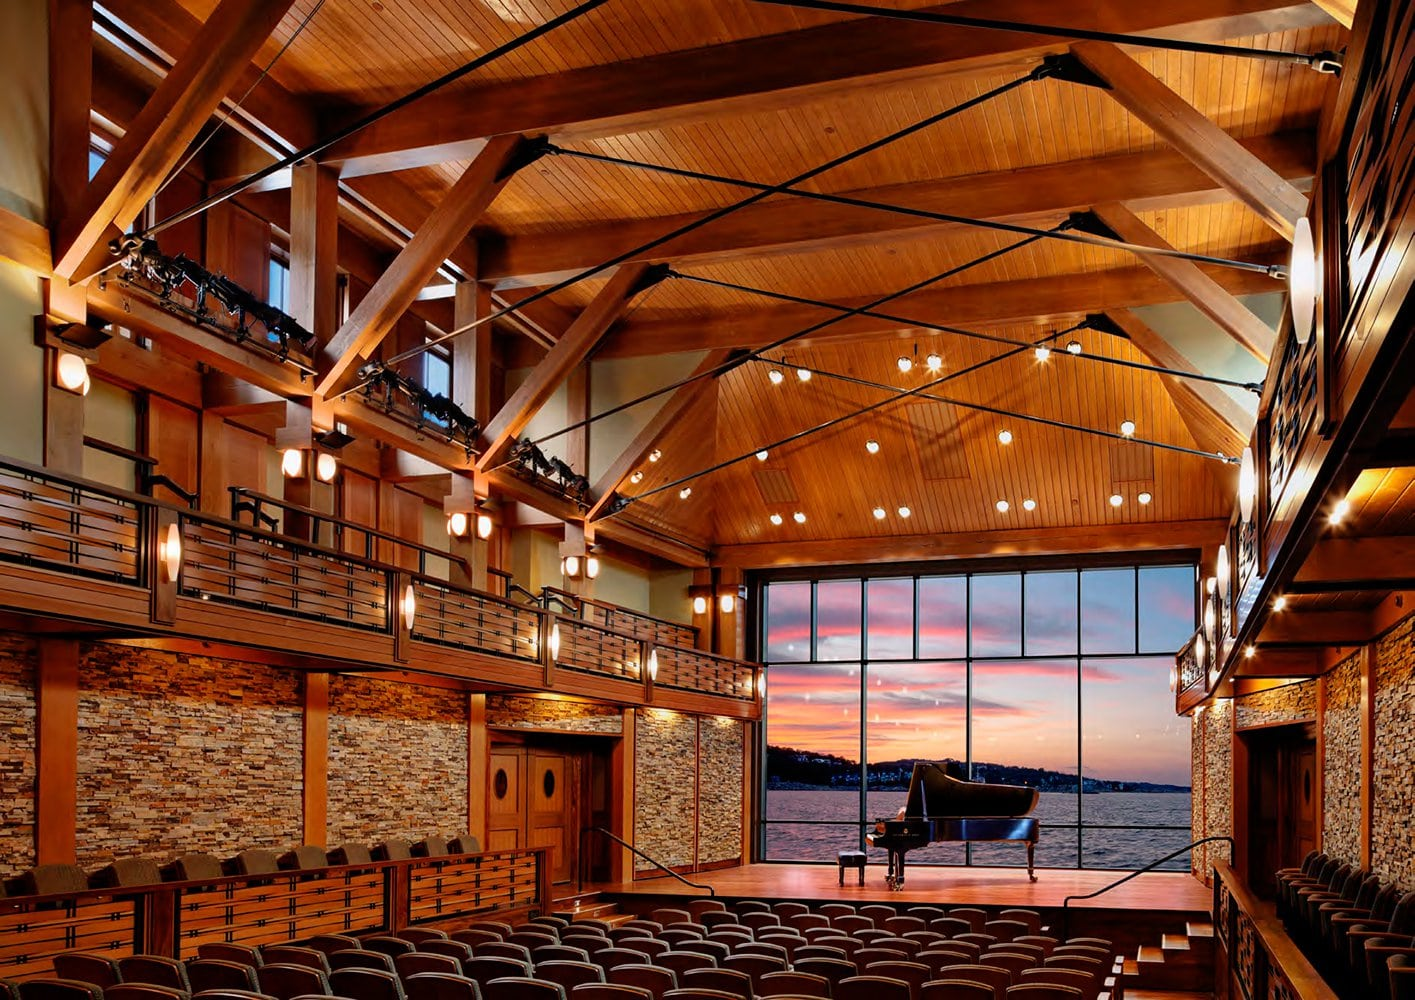 Norstone Architectural Grade Ochre Blend Standard Series Rock Panels at Rockport Concert Hall in Rockport, MA